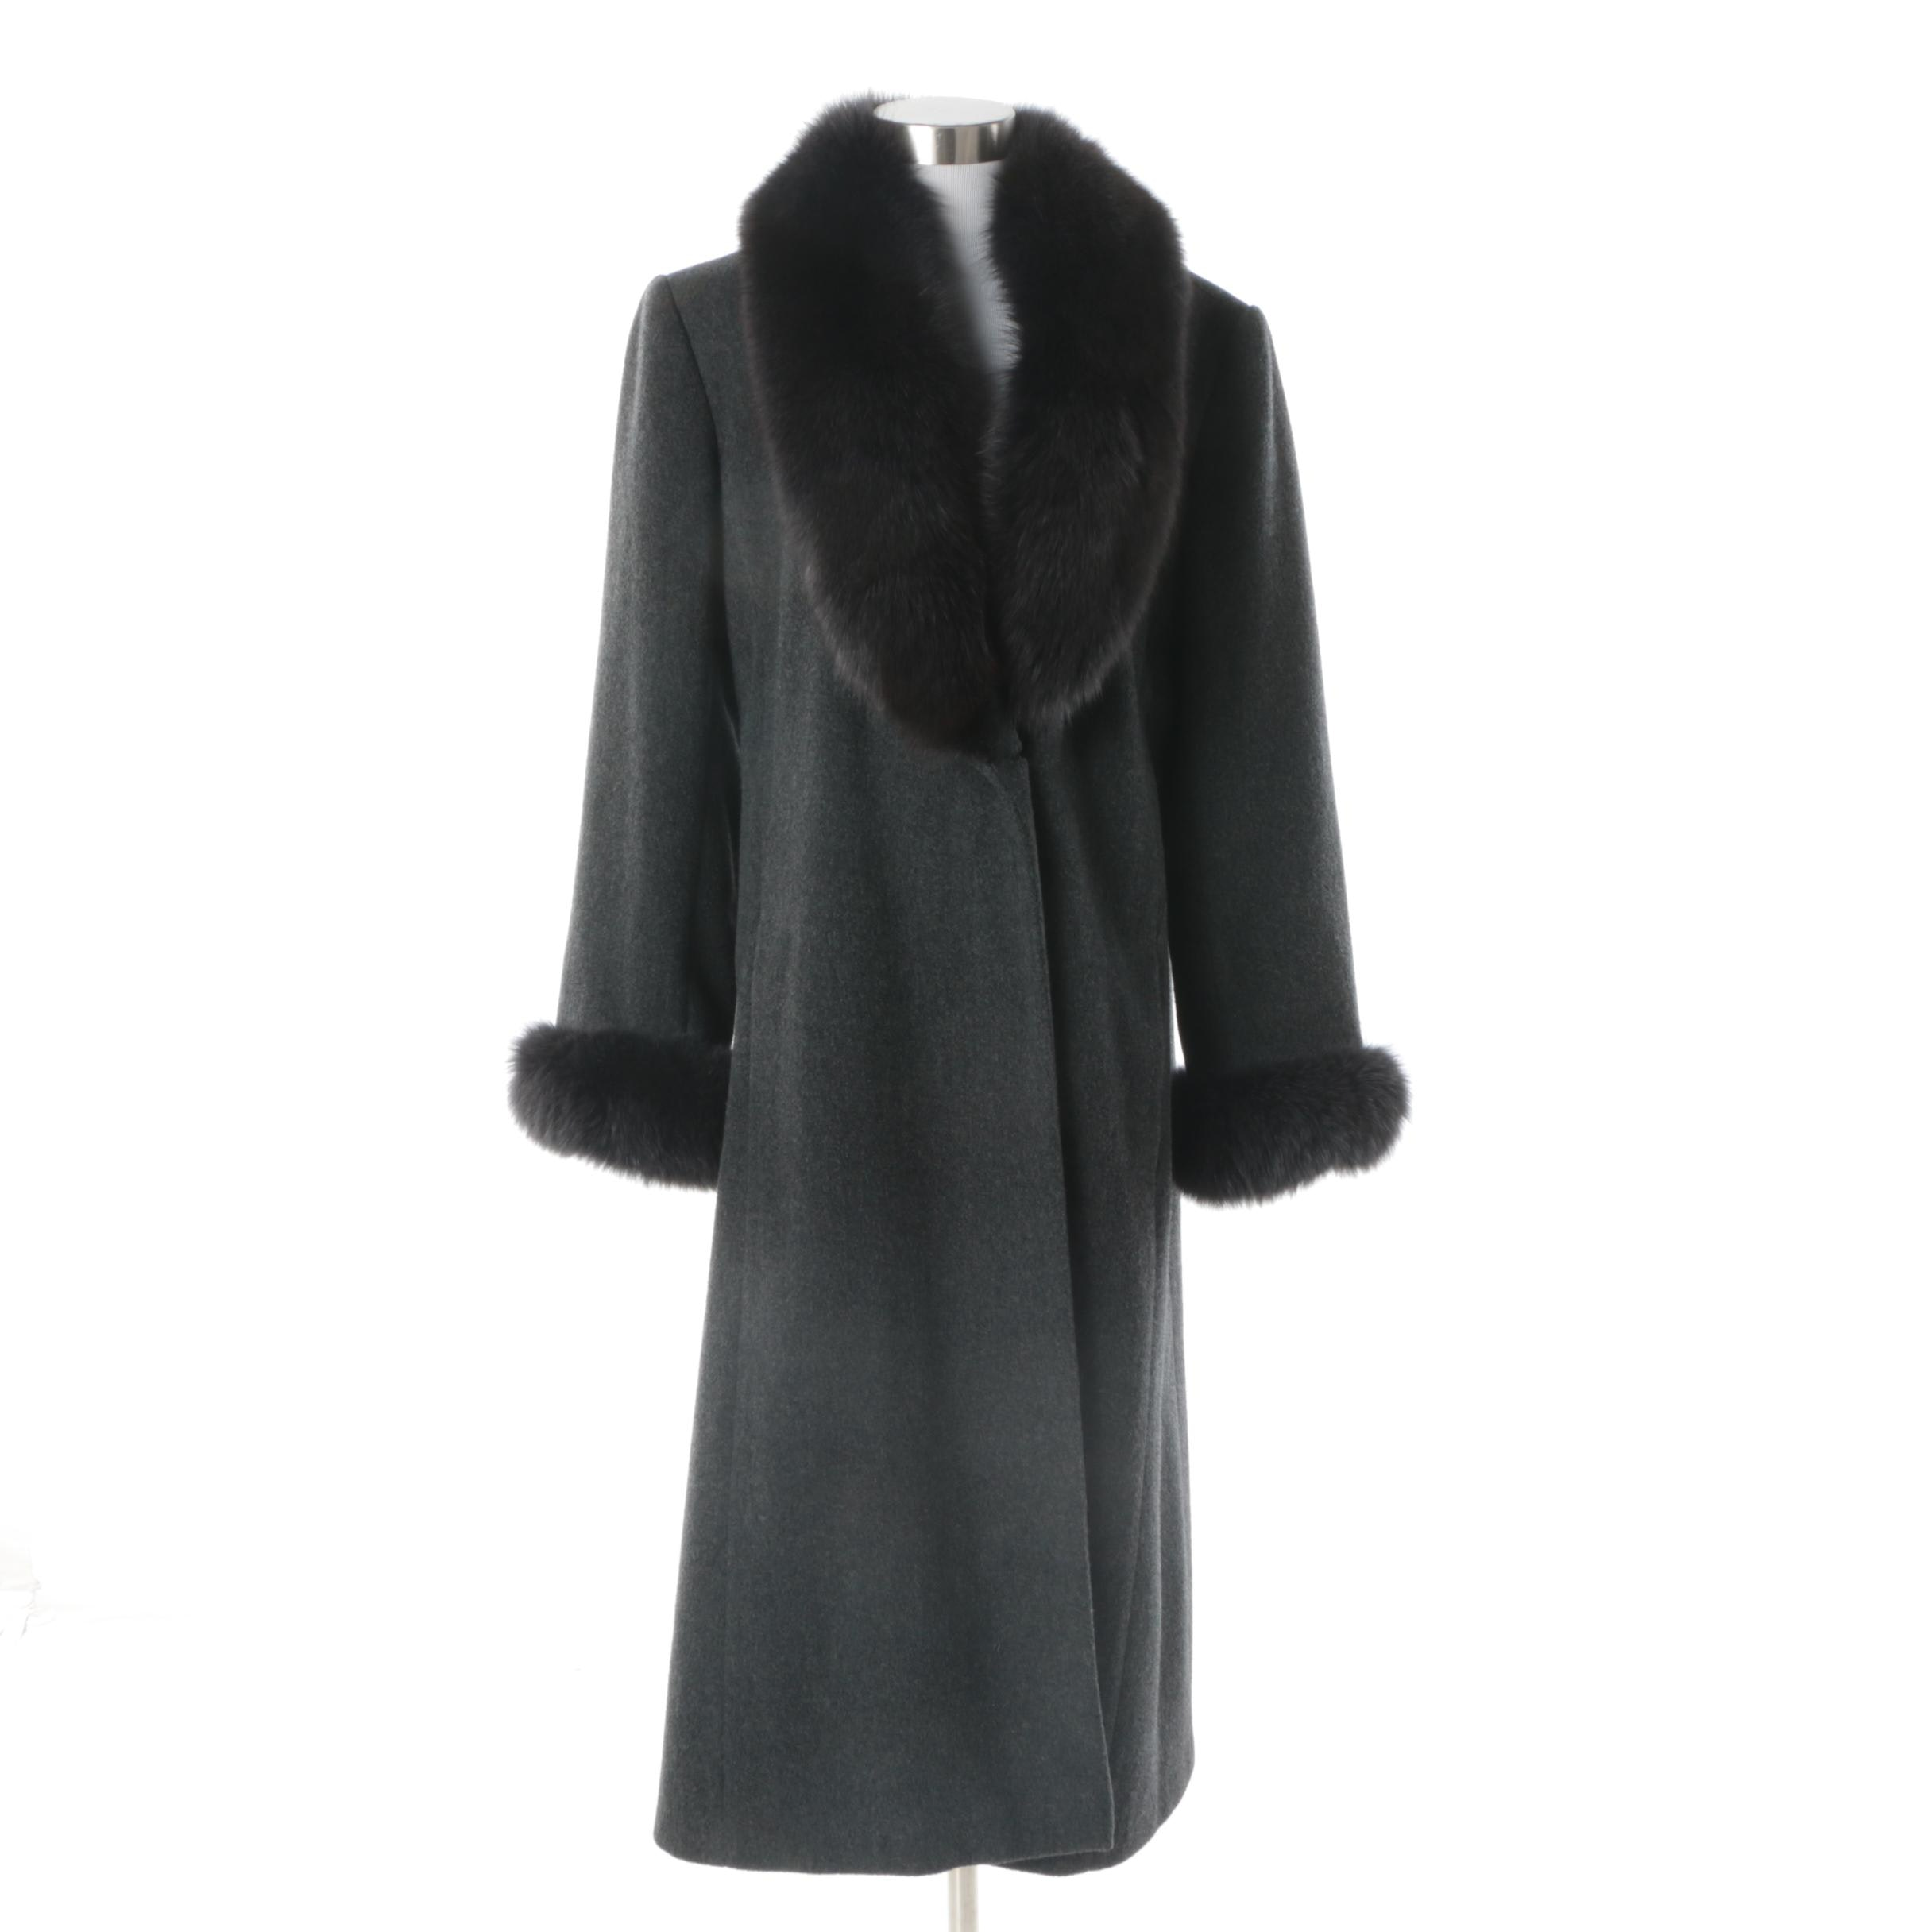 Women's Marvin Richards Lambswool Coat with Fox Fur Collar and Cuffs